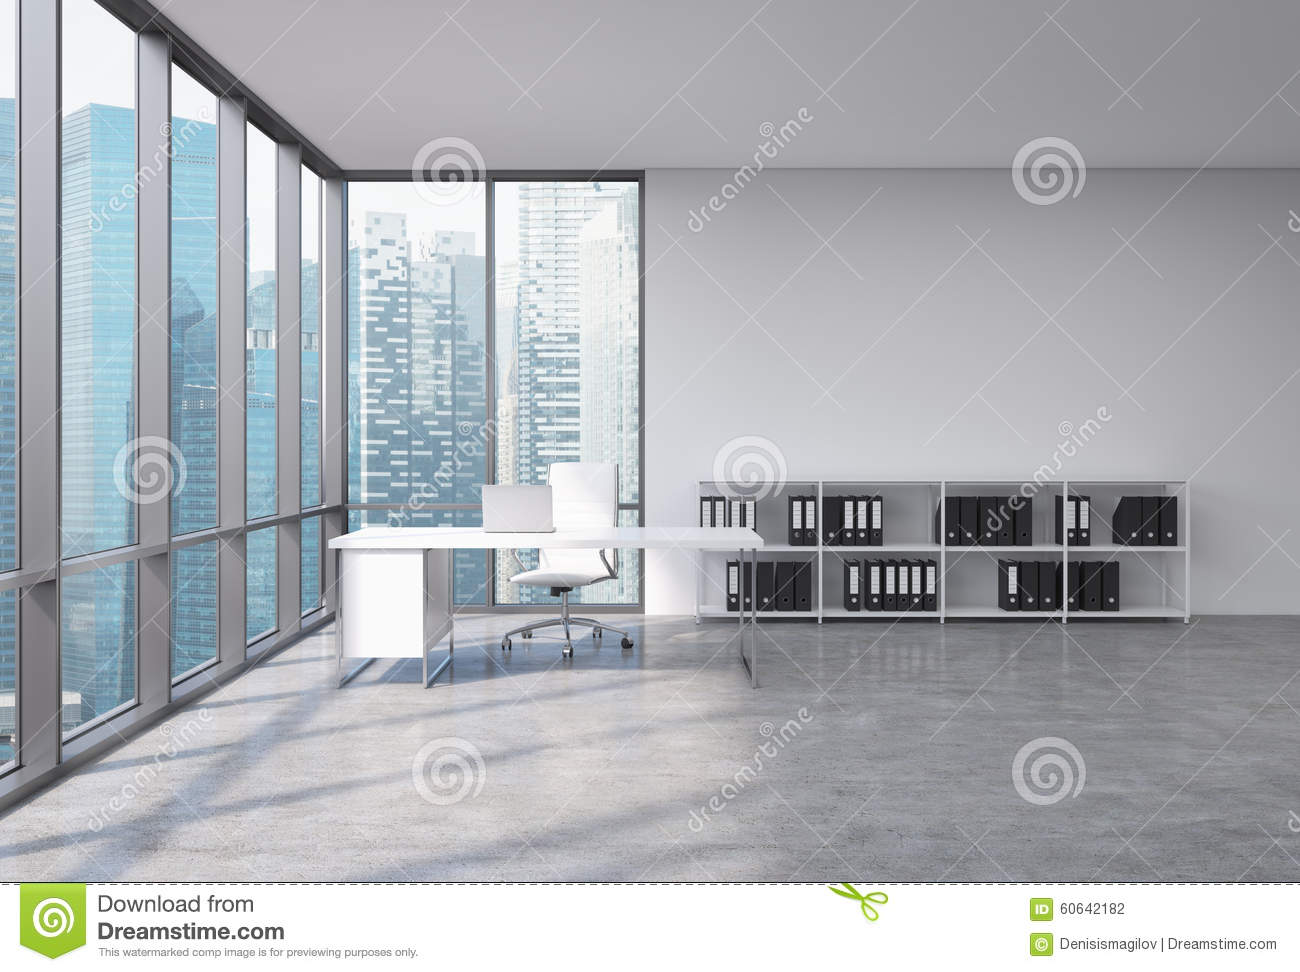 A CEO Workplace In A Modern Corner Panoramic Office With Singapore ...